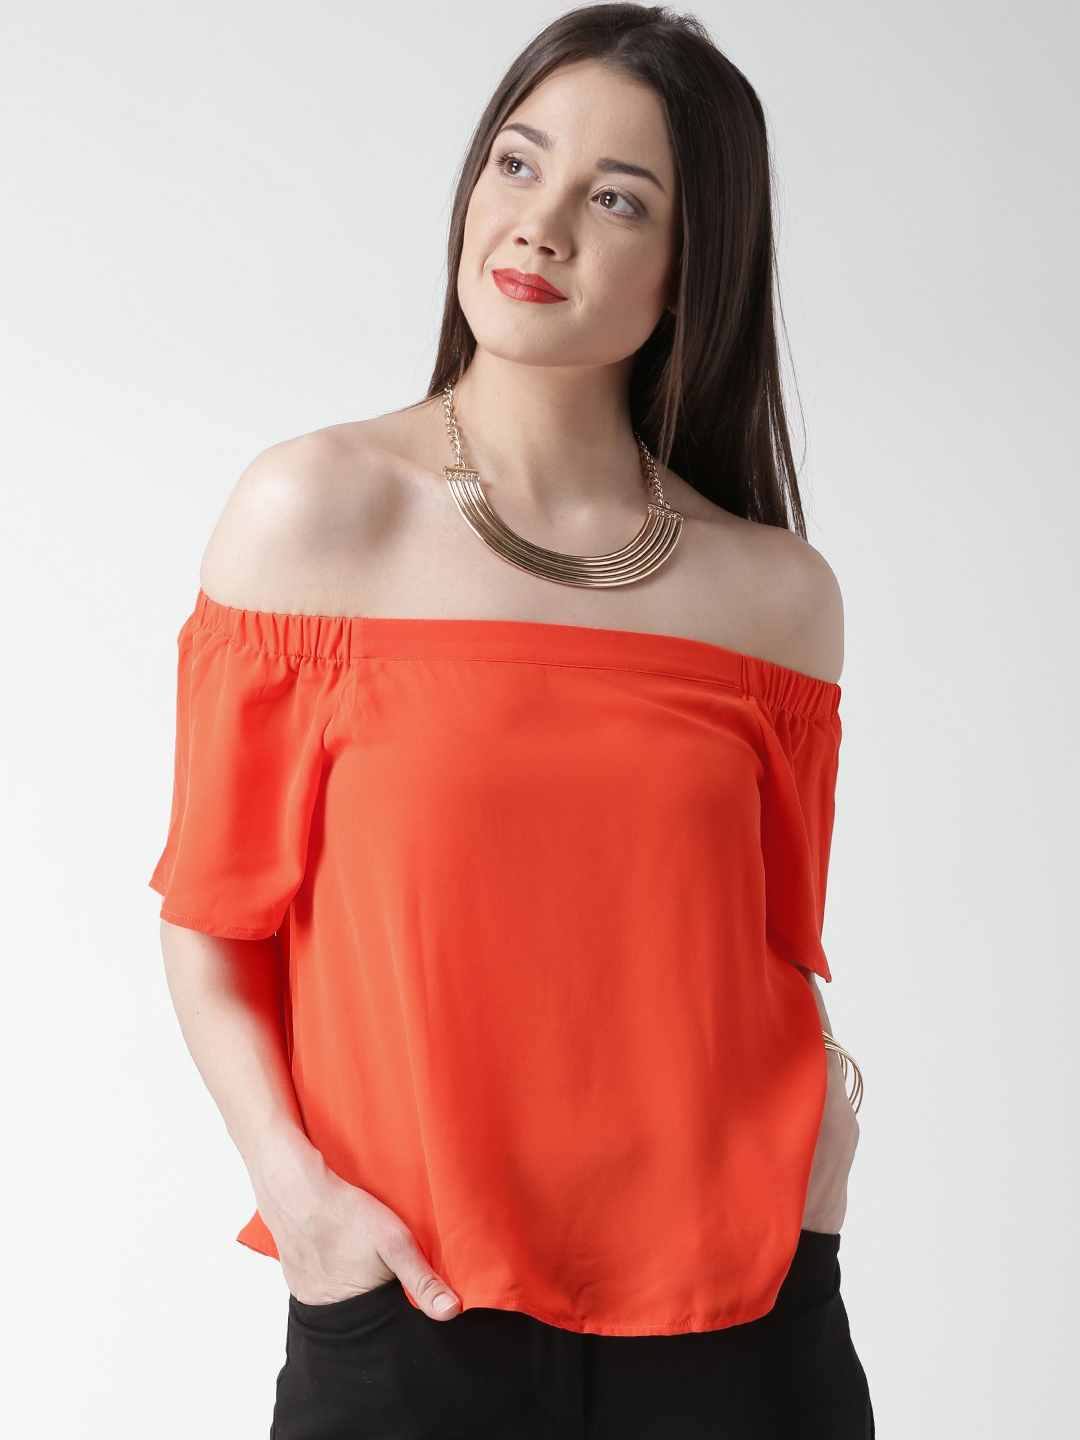 ed19744a988 Buy New Look Women Neon Orange Solid Off Shoulder Top - Tops for ...